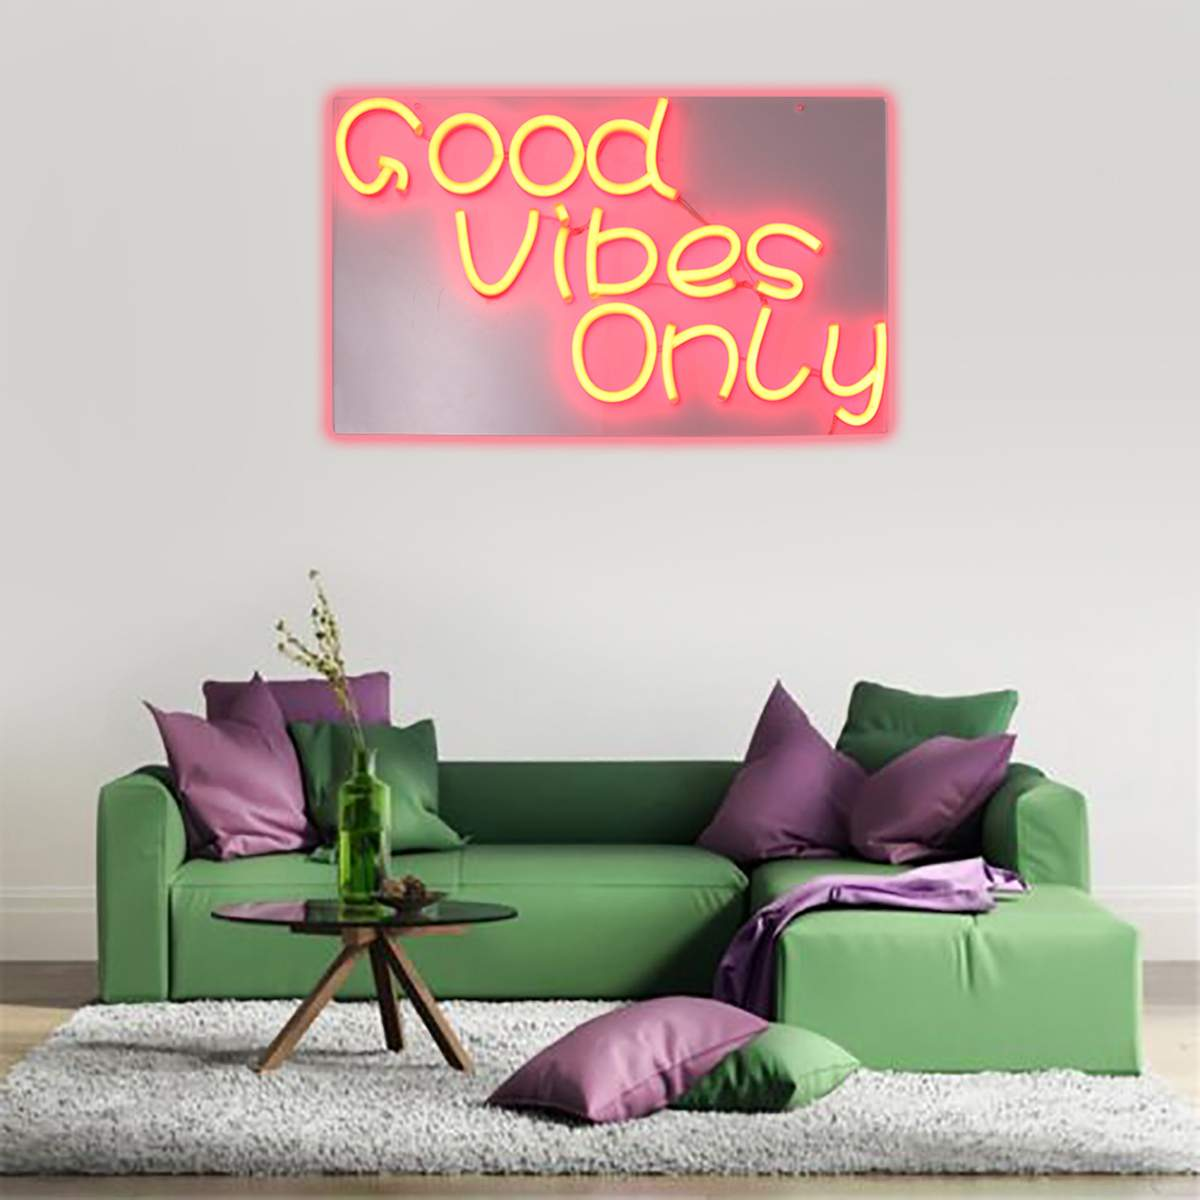 Good Vibes Only Neon Art Sign LED Light Tube Handmade Visual Artwork Wall Decoration Colorful Neon Bulbs Billboard 60cmX35cm